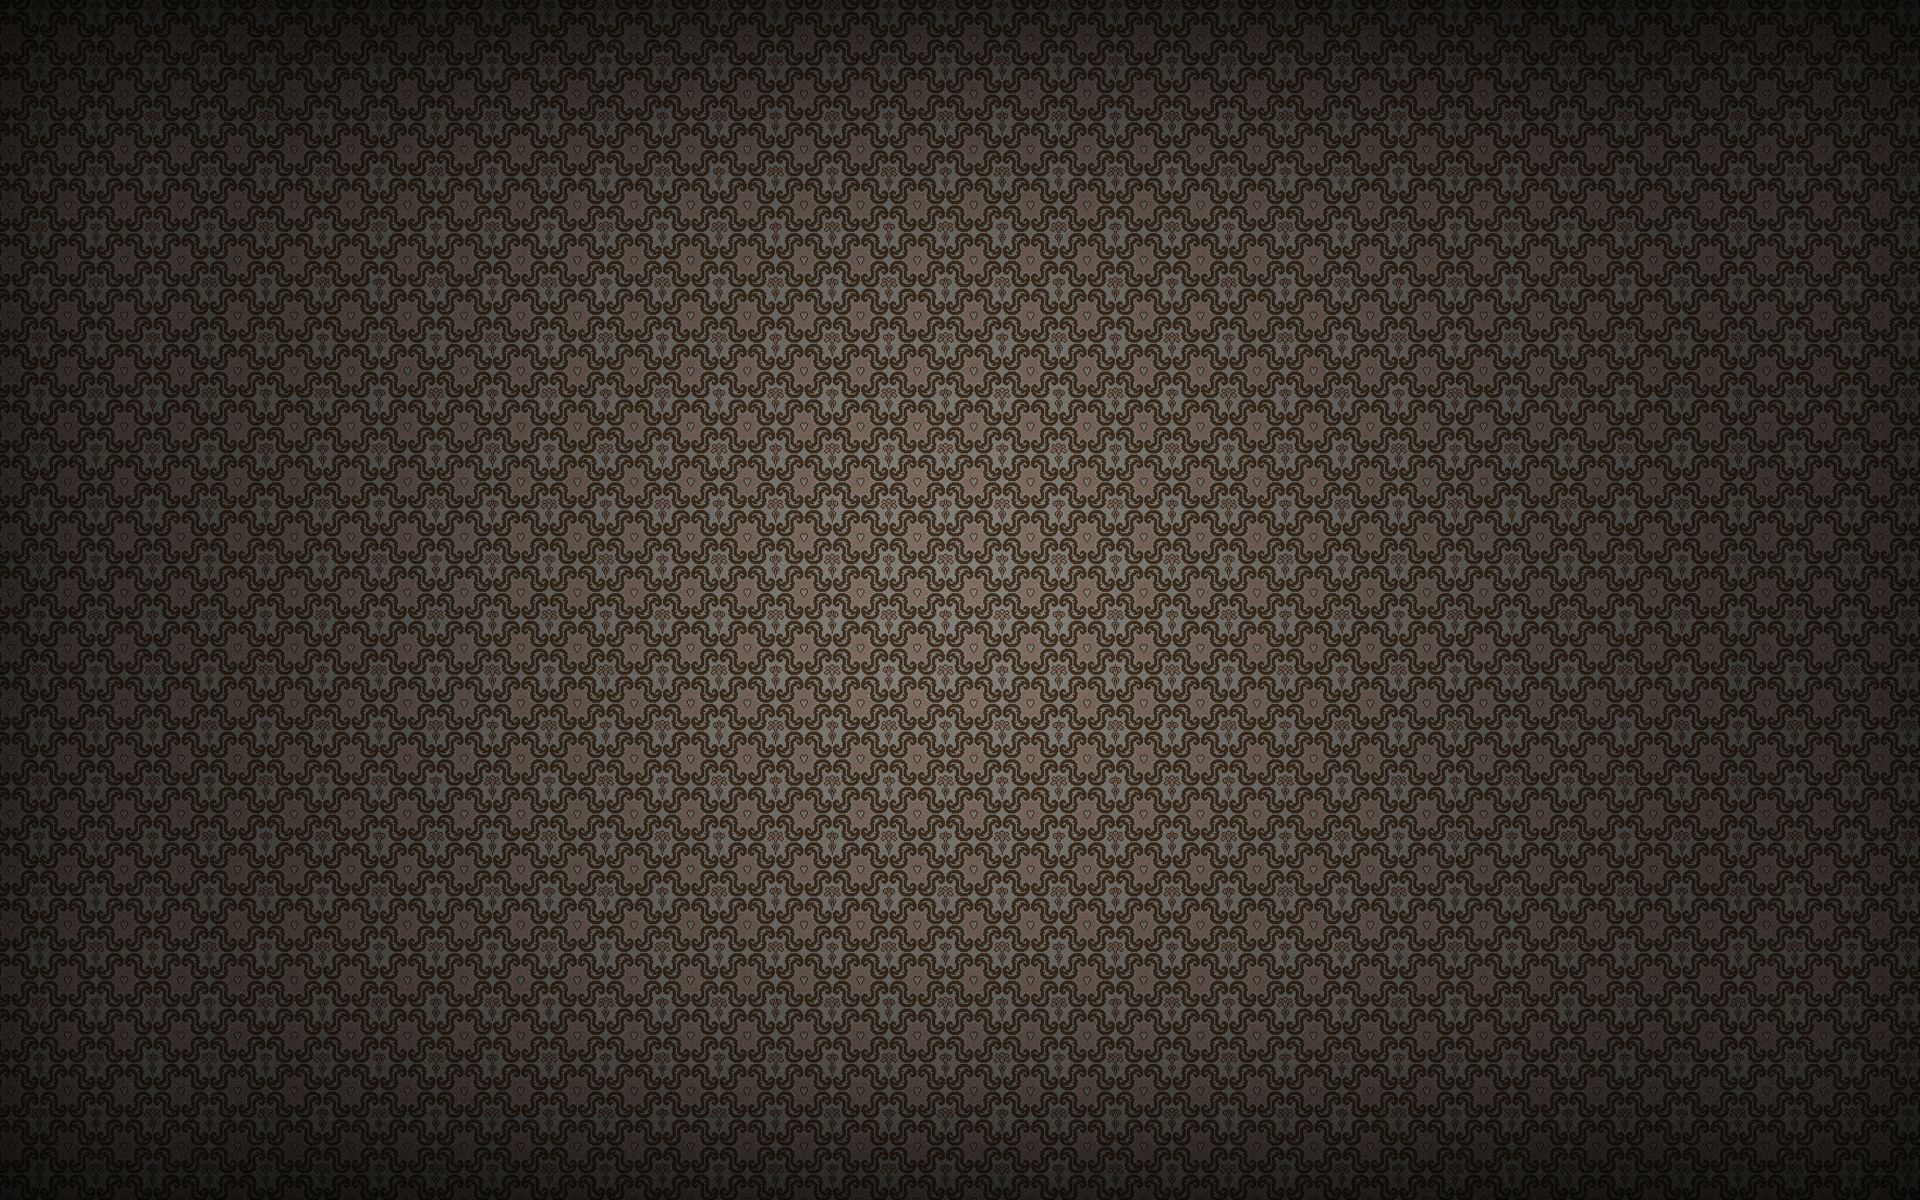 hd texture backgrounds 35 wallpapers